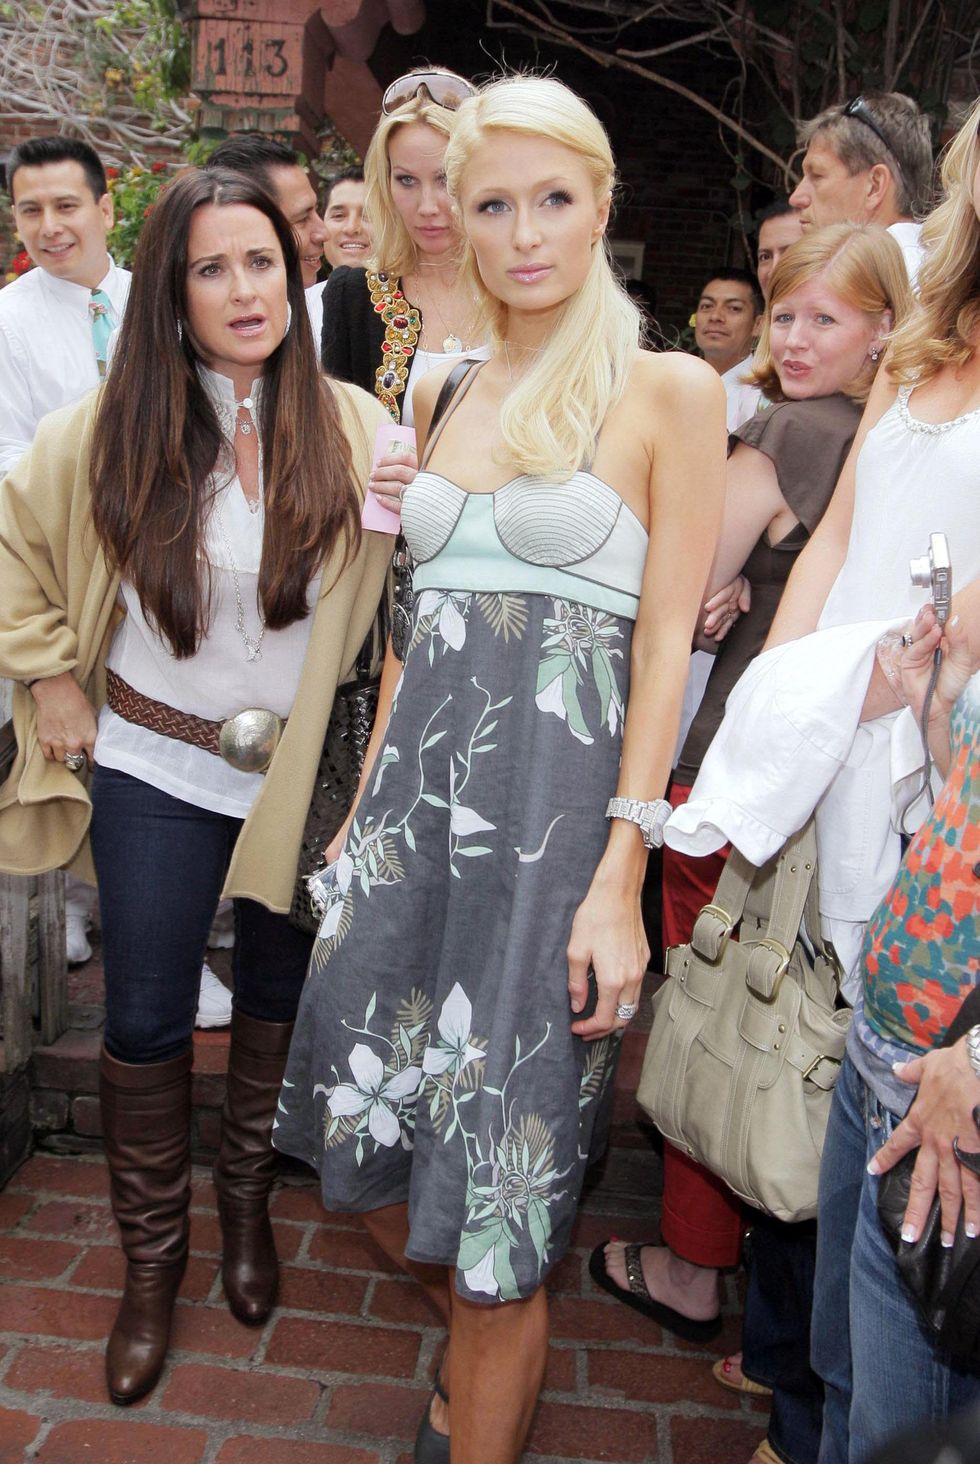 paris-hilton-at-the-ivy-restaurant-in-beverly-hills-01